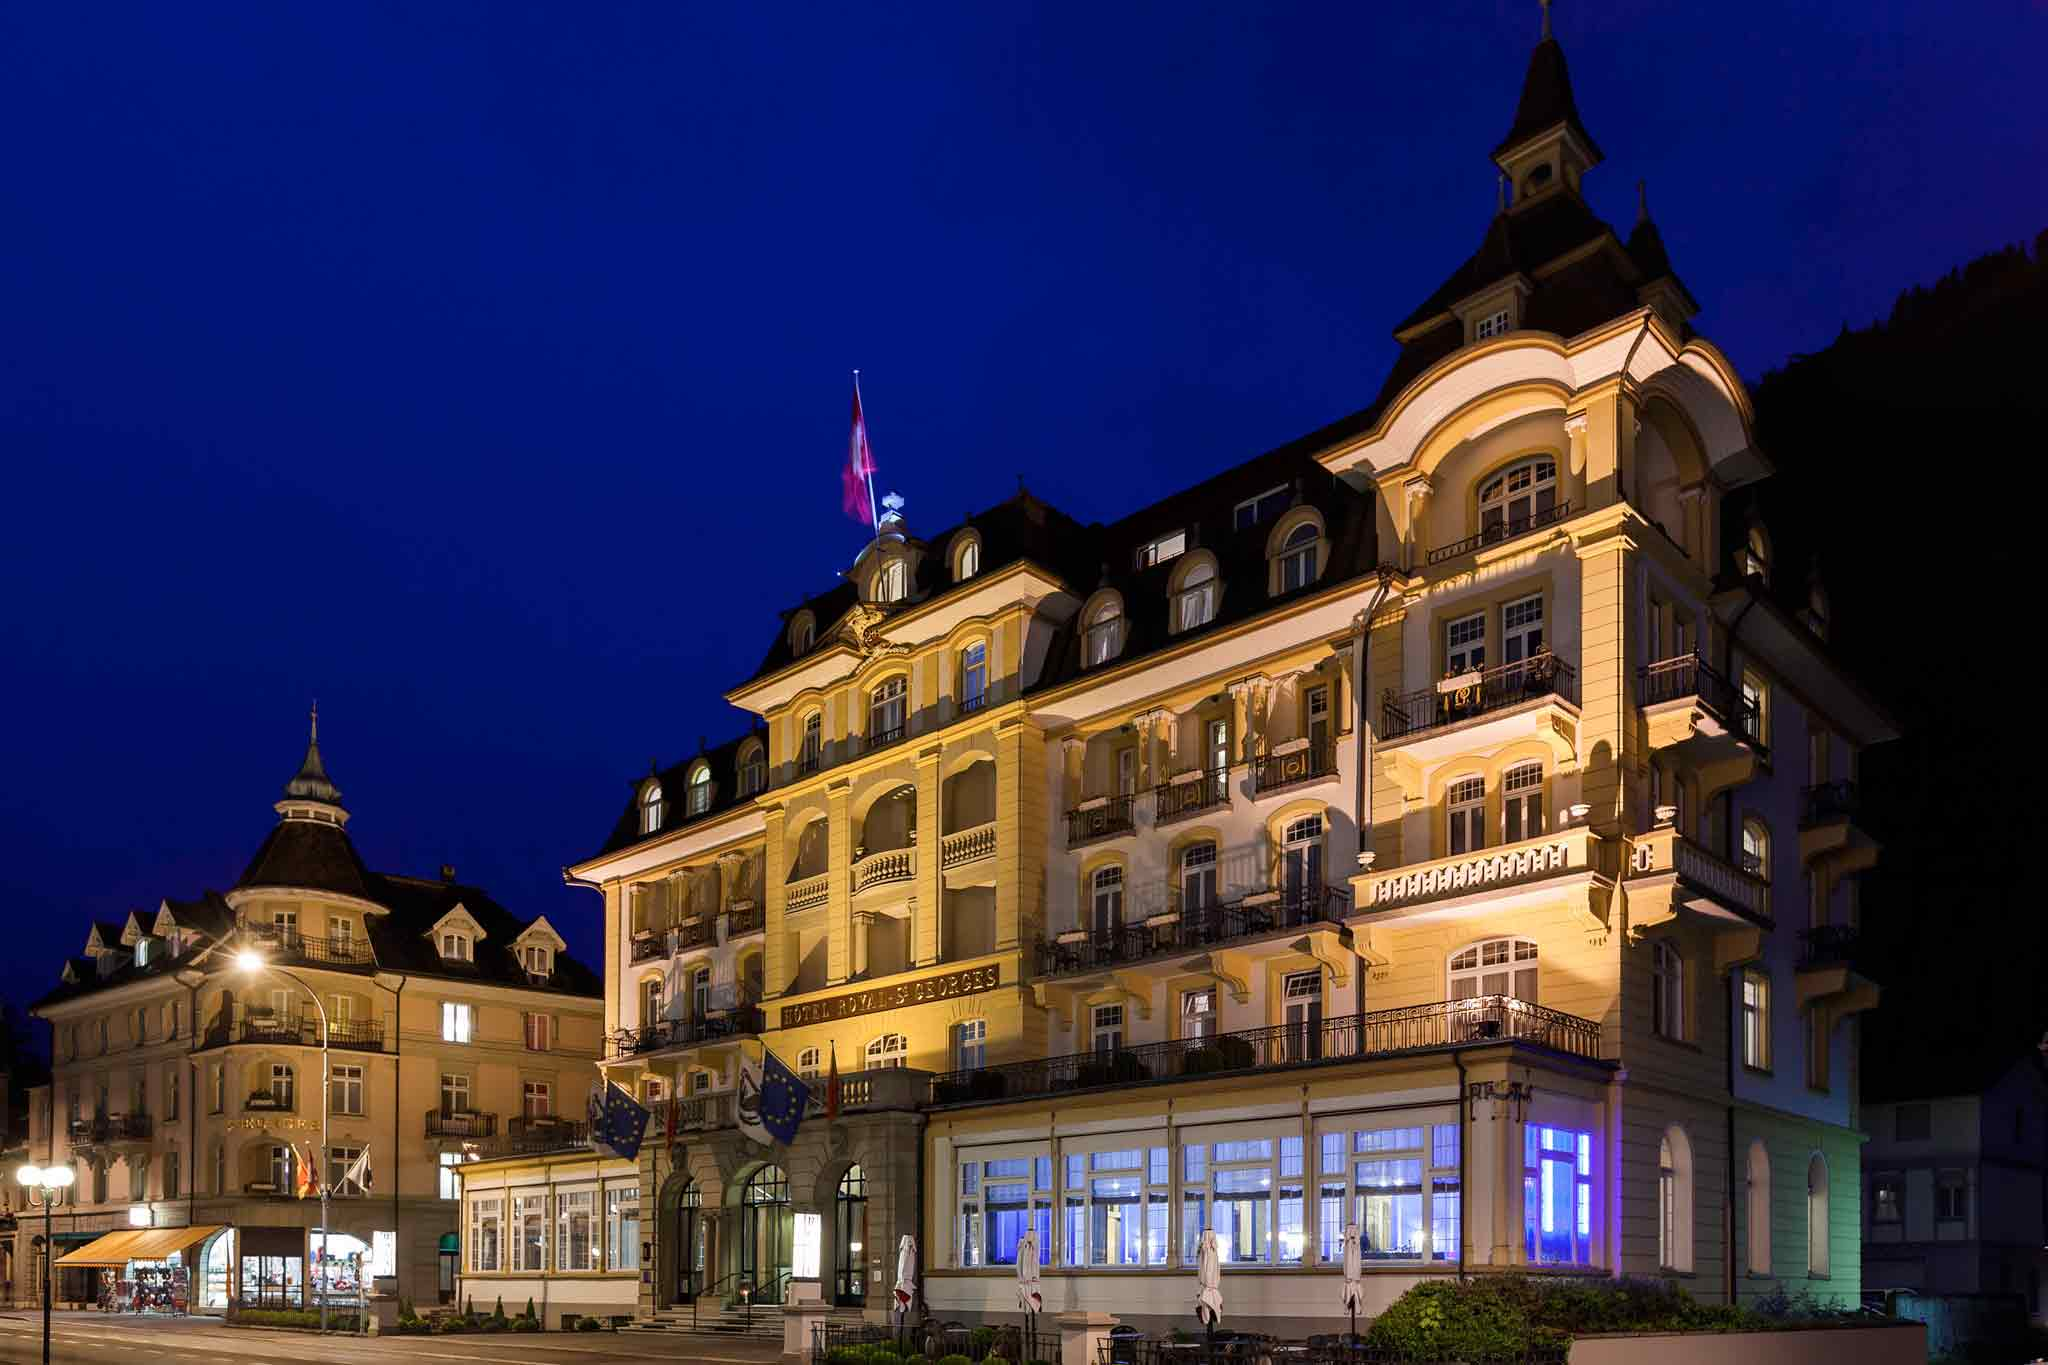 Hotel - Hotel Royal St Georges Interlaken - MGallery by Sofitel